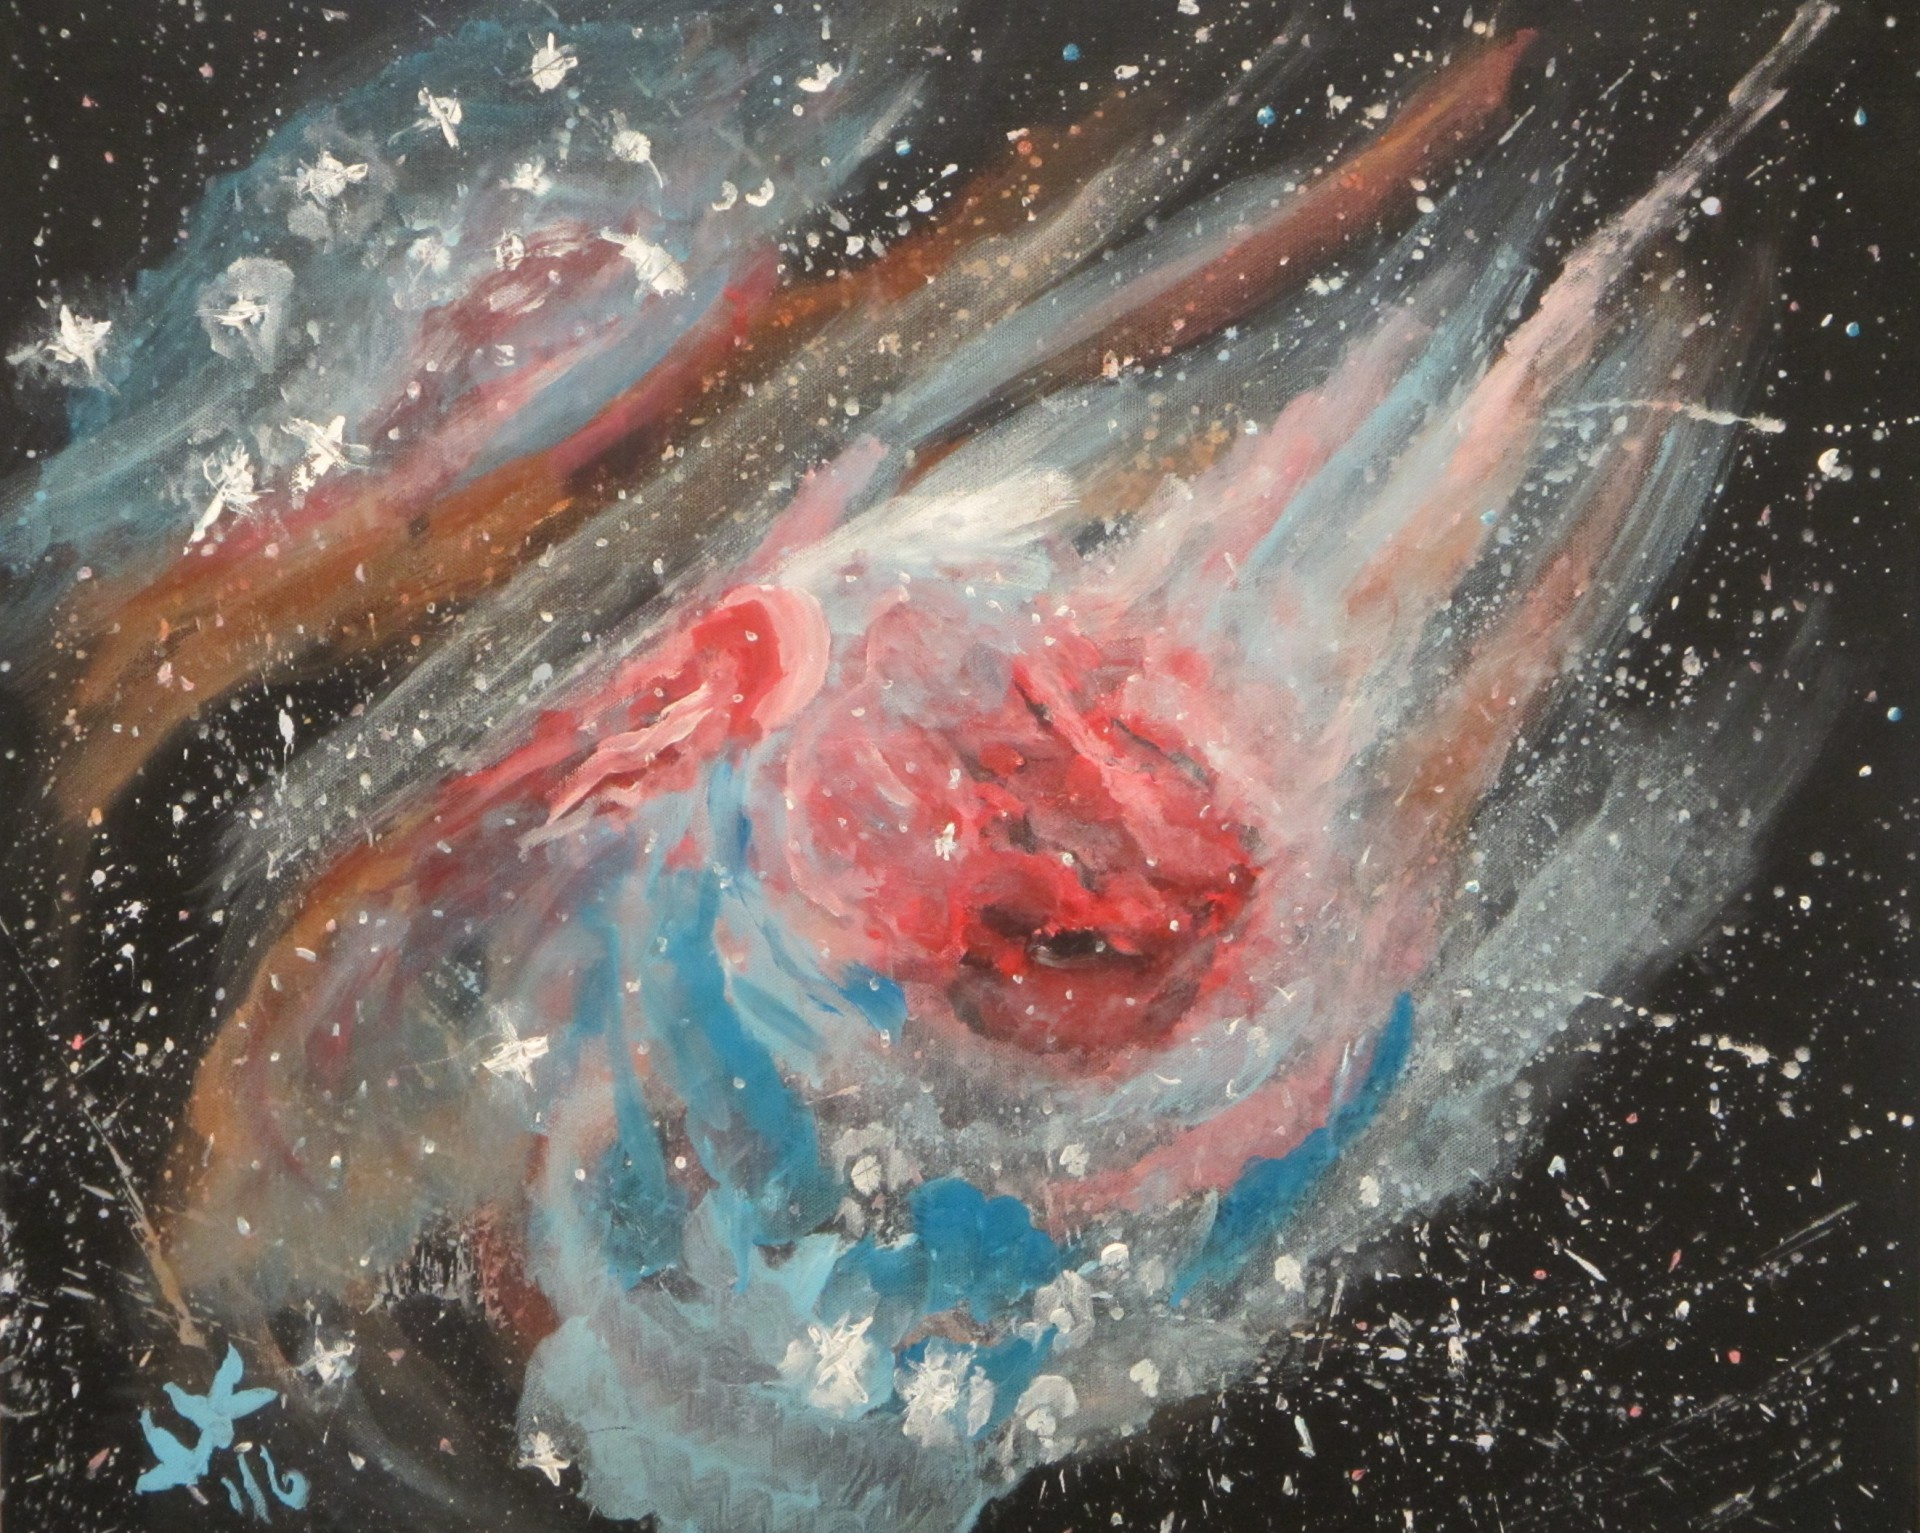 Abstract starscape showing a hydrogen cloud glowing pink with radiation.